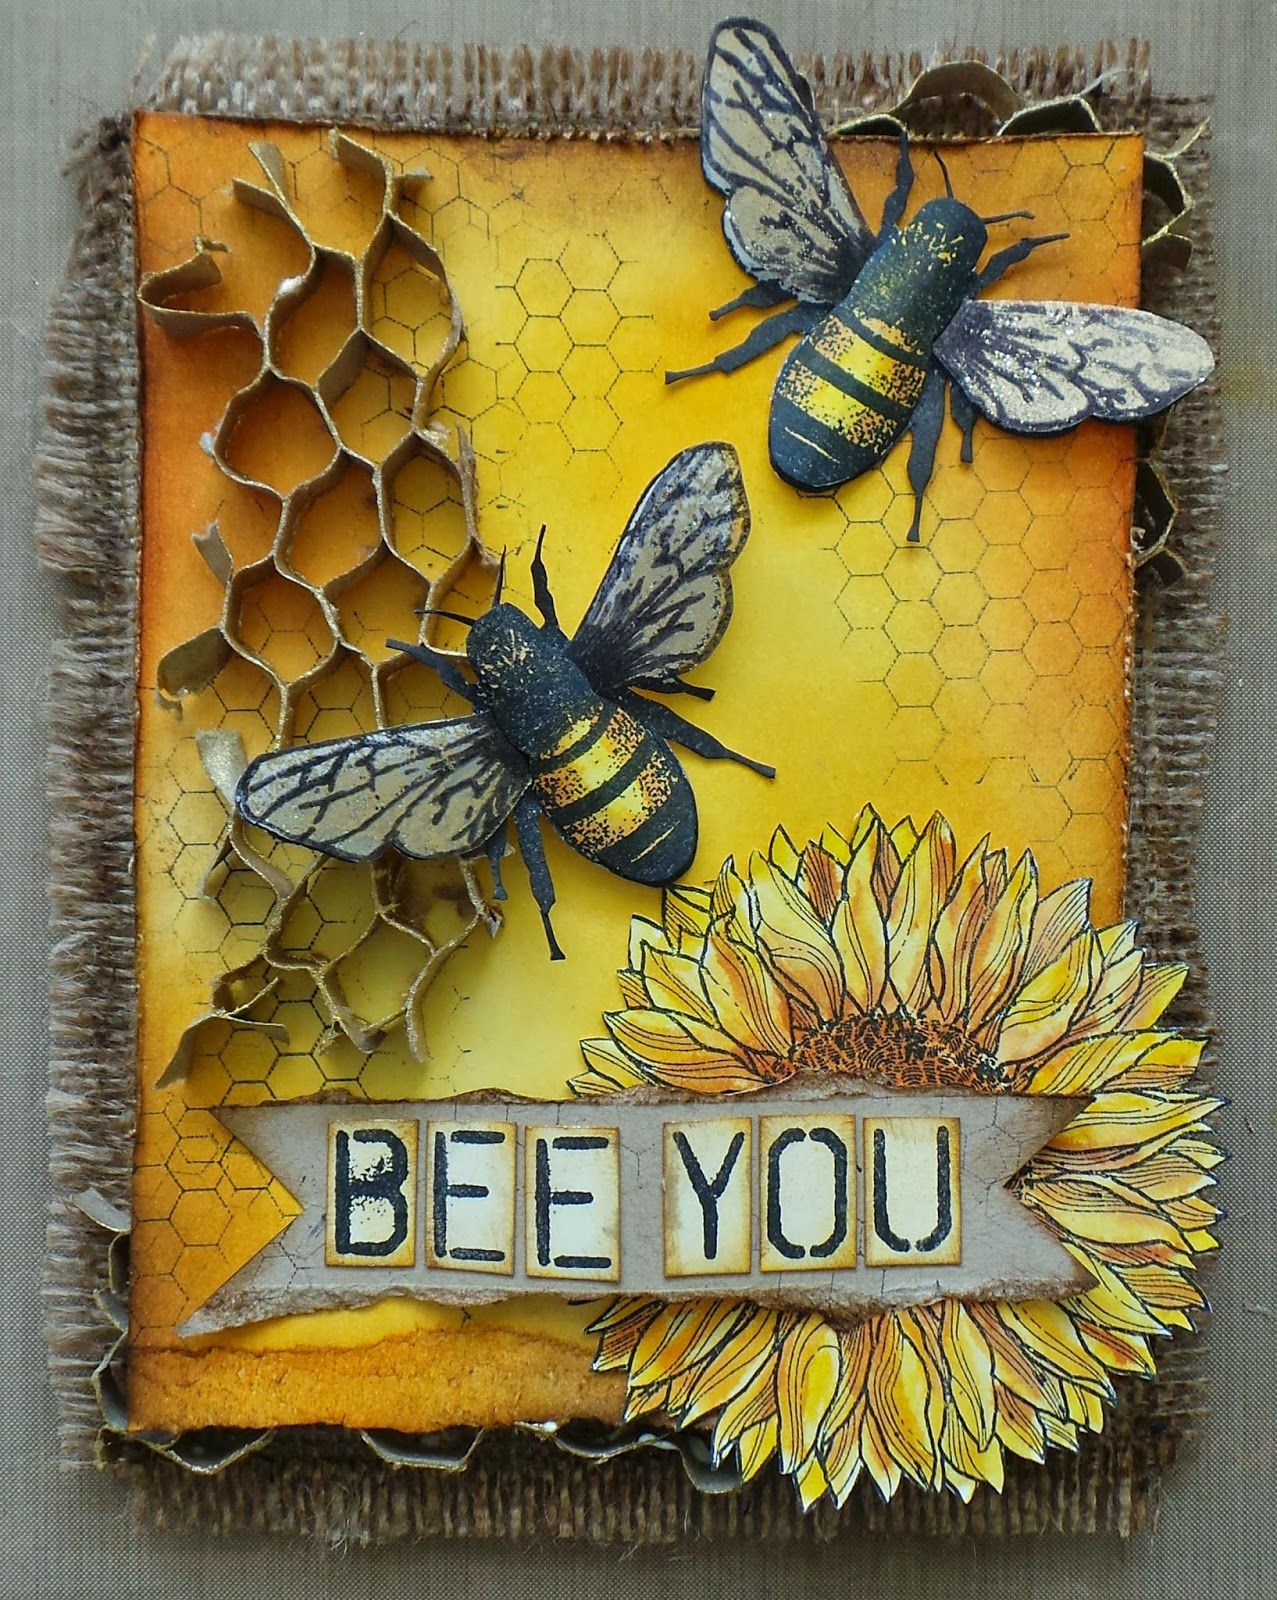 Pin By Ruth Aulet On CRAFTING LOVE